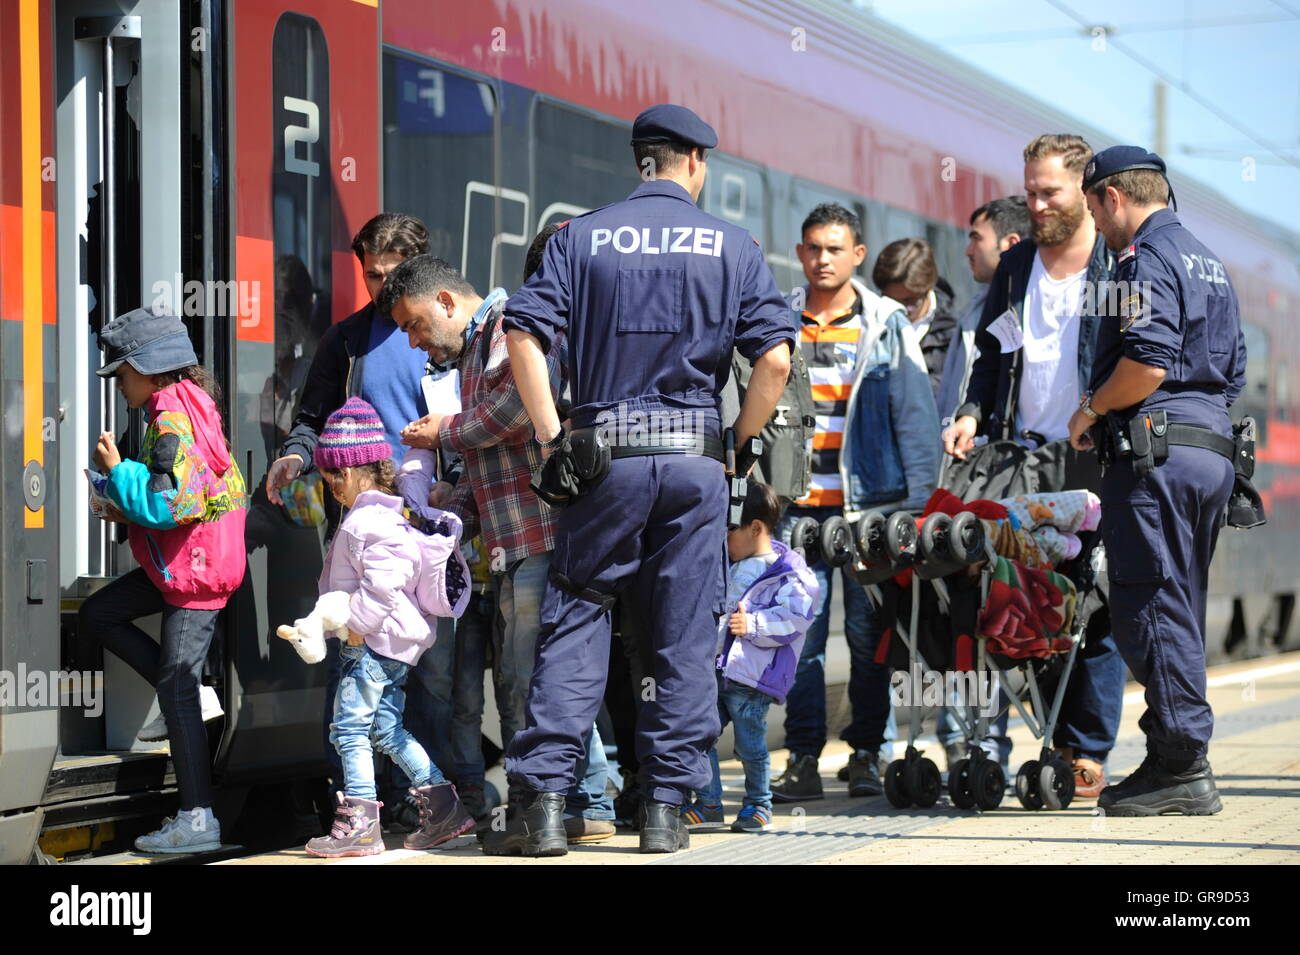 Syrian Refugee Family At The Westbahnhof In Vienna Accompanied By The Austrian Police Board A Train To Germany. - Stock Image